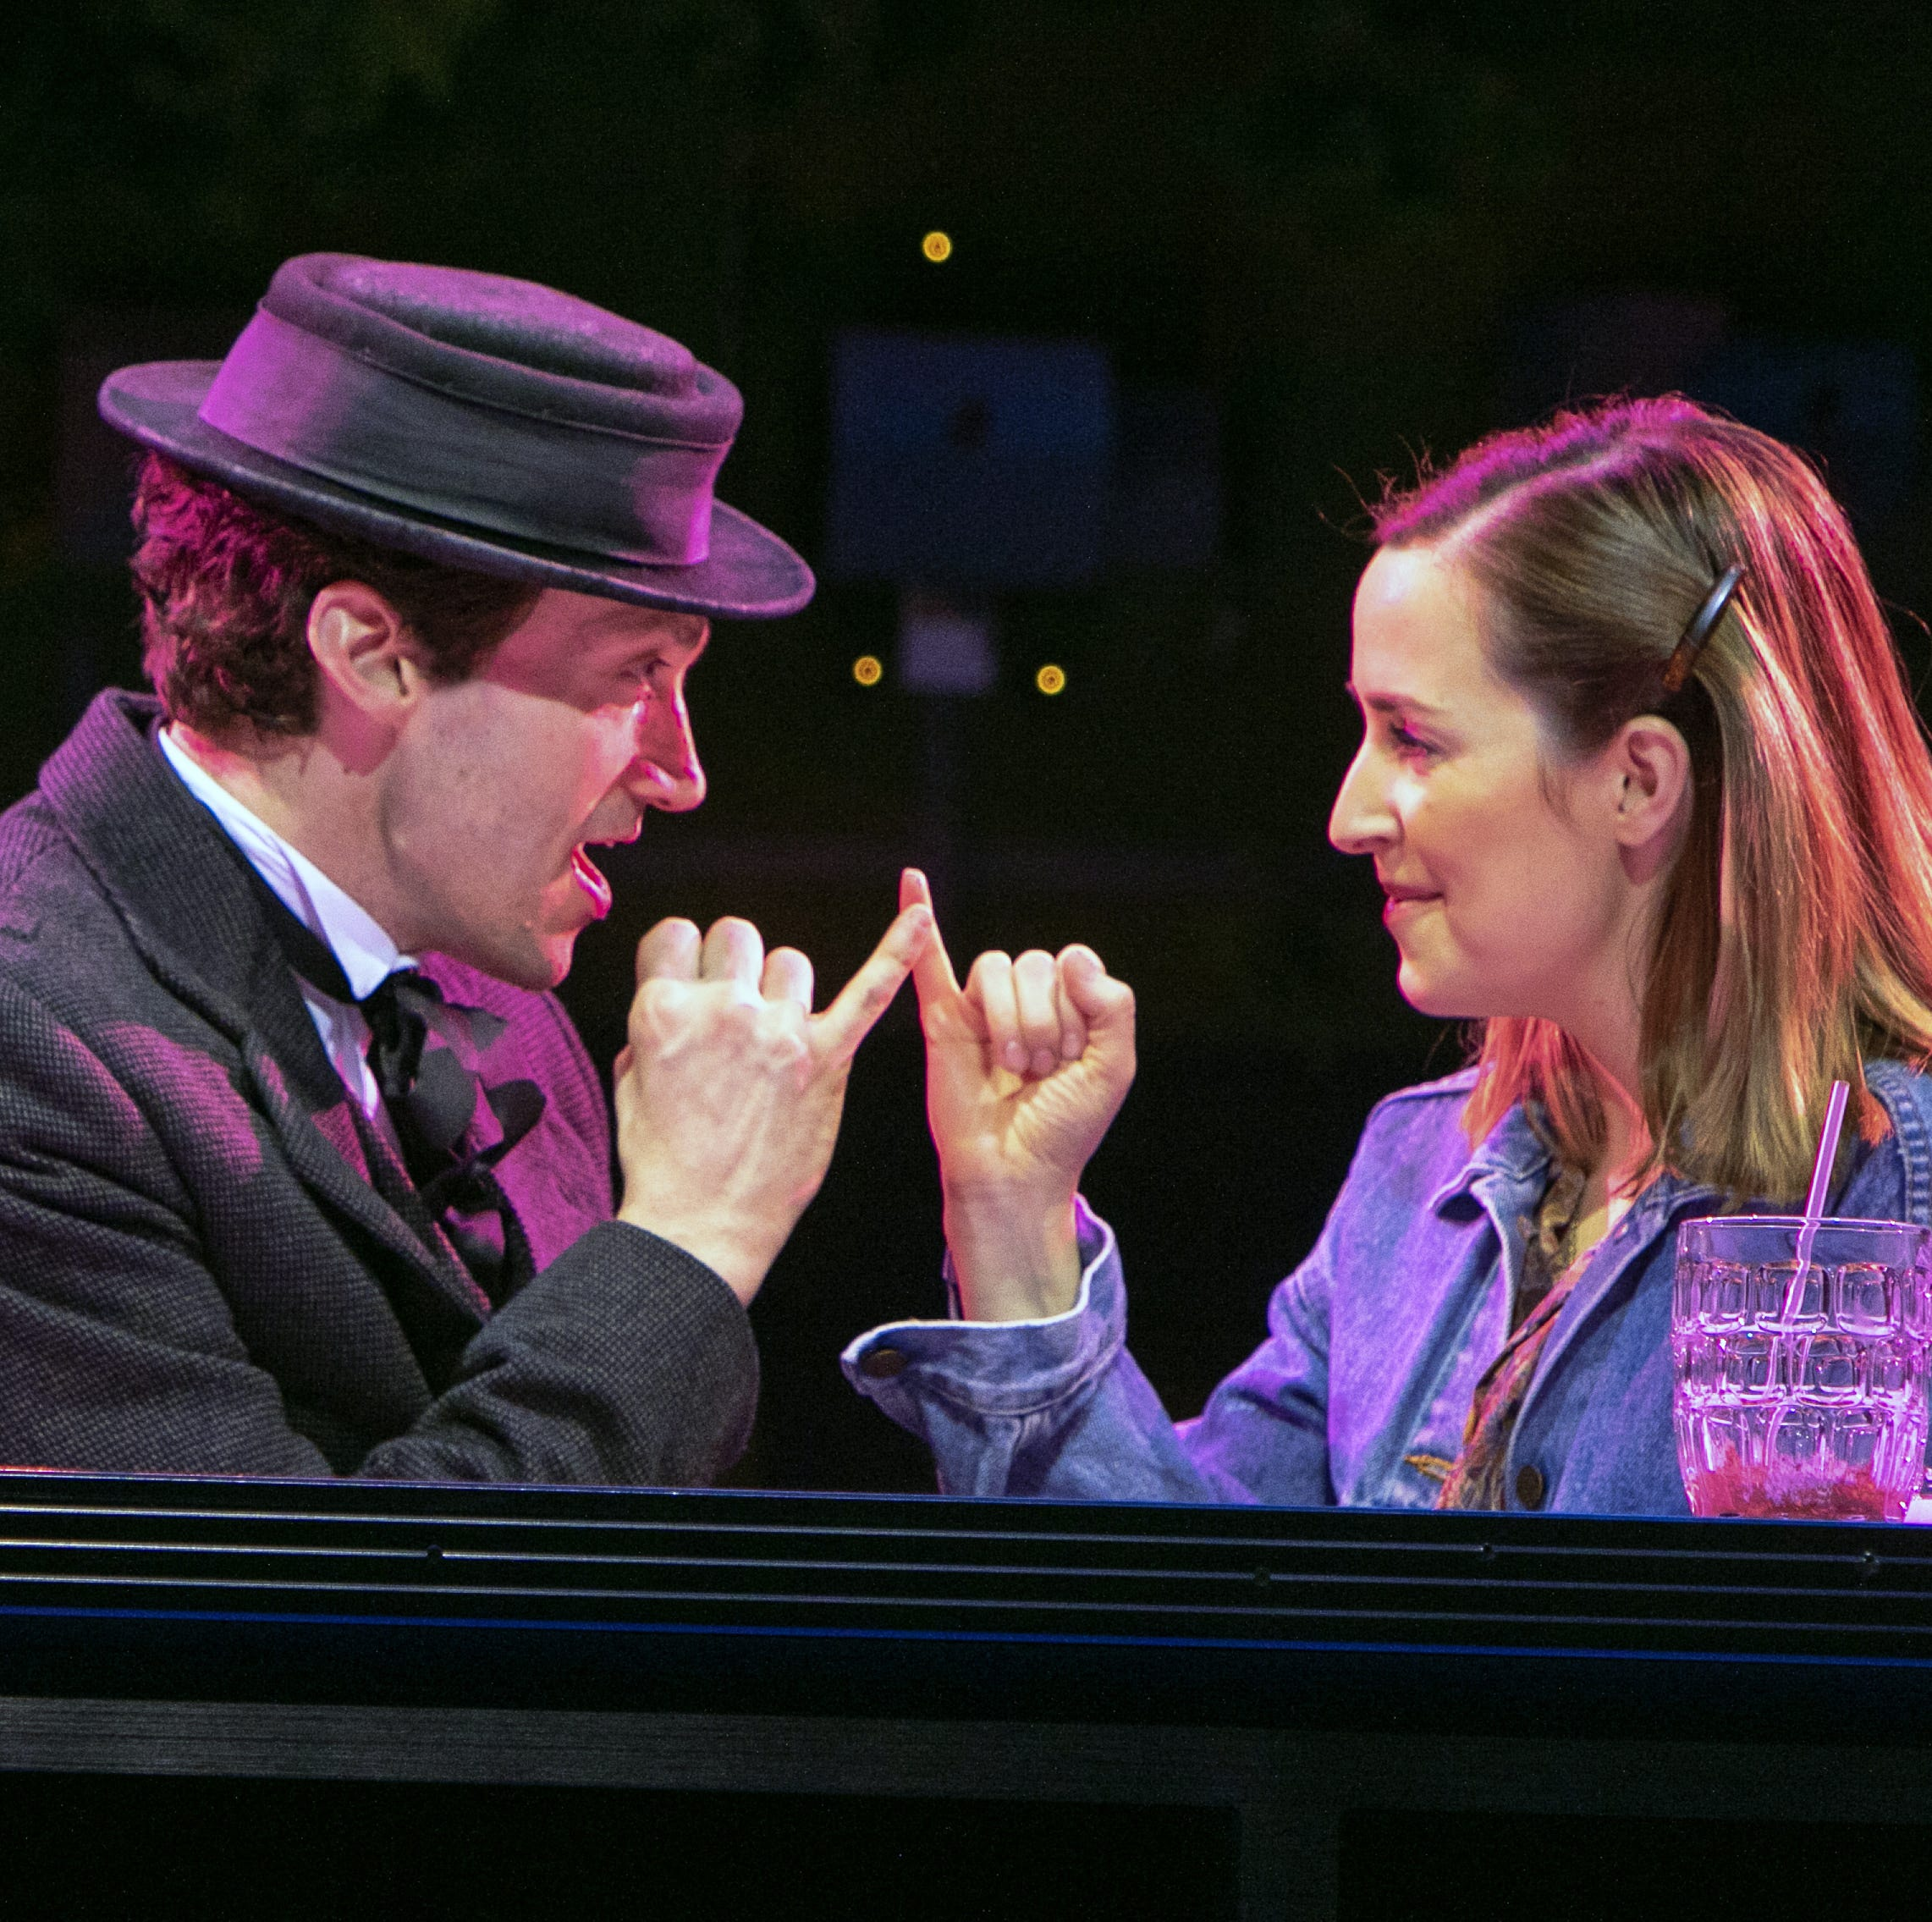 'Benny & Joon' on stage charms and disarms with subtle differences at Paper Mill Playhouse